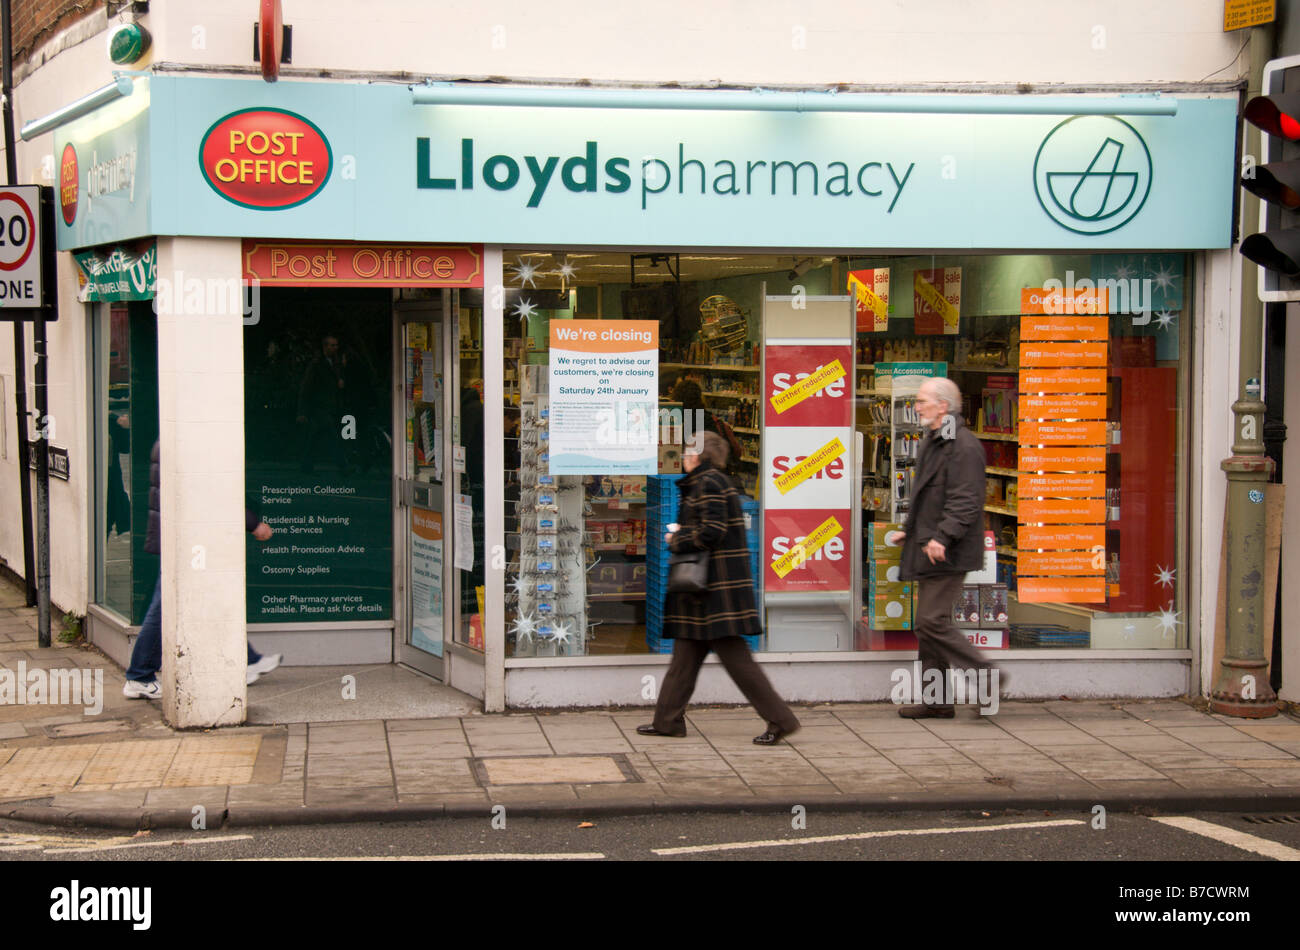 Shop front of the Lloyds Pharmacy and Post Office, Woodstock Rd, Oxford England. Jan 2009 - Stock Image